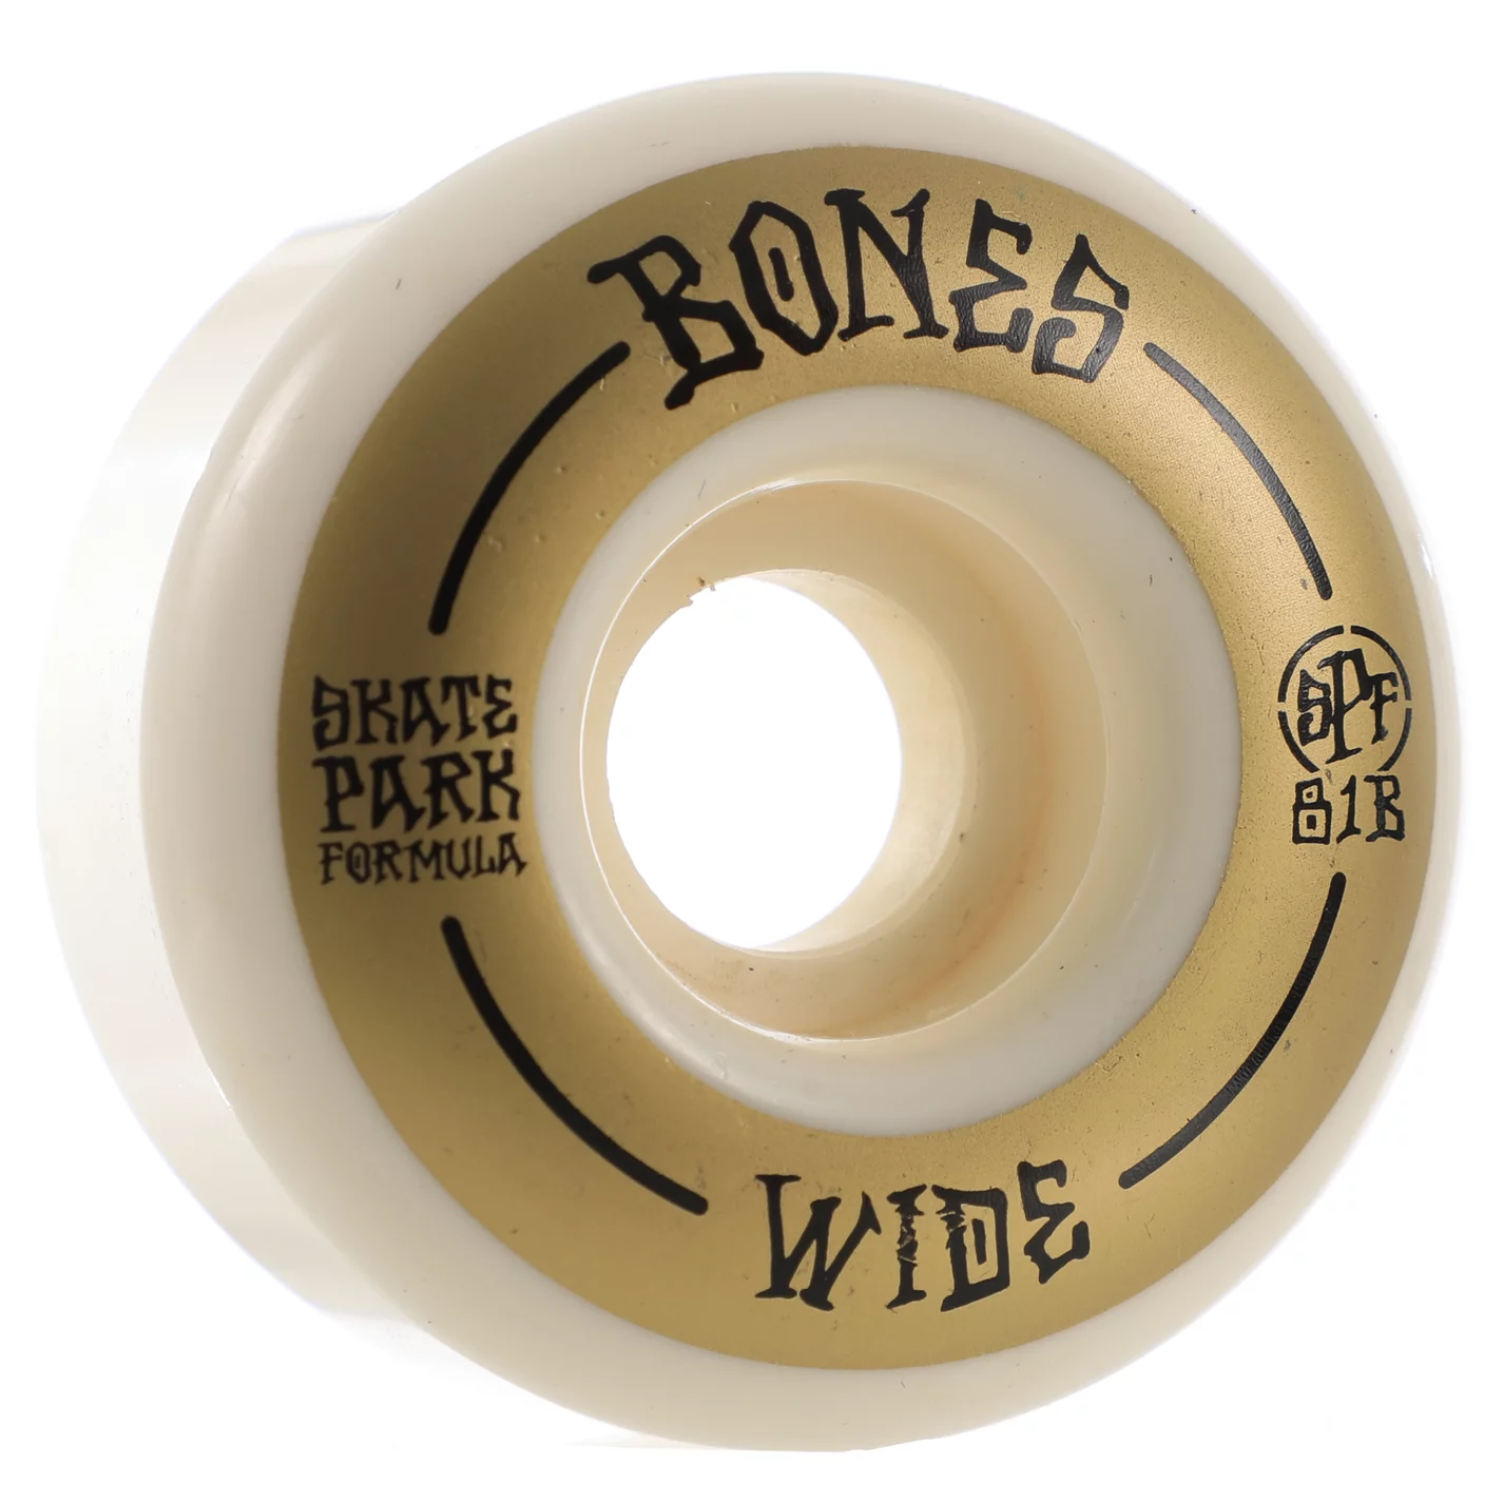 Llantas Bones SPF Wide gold - 54mm, 55mm